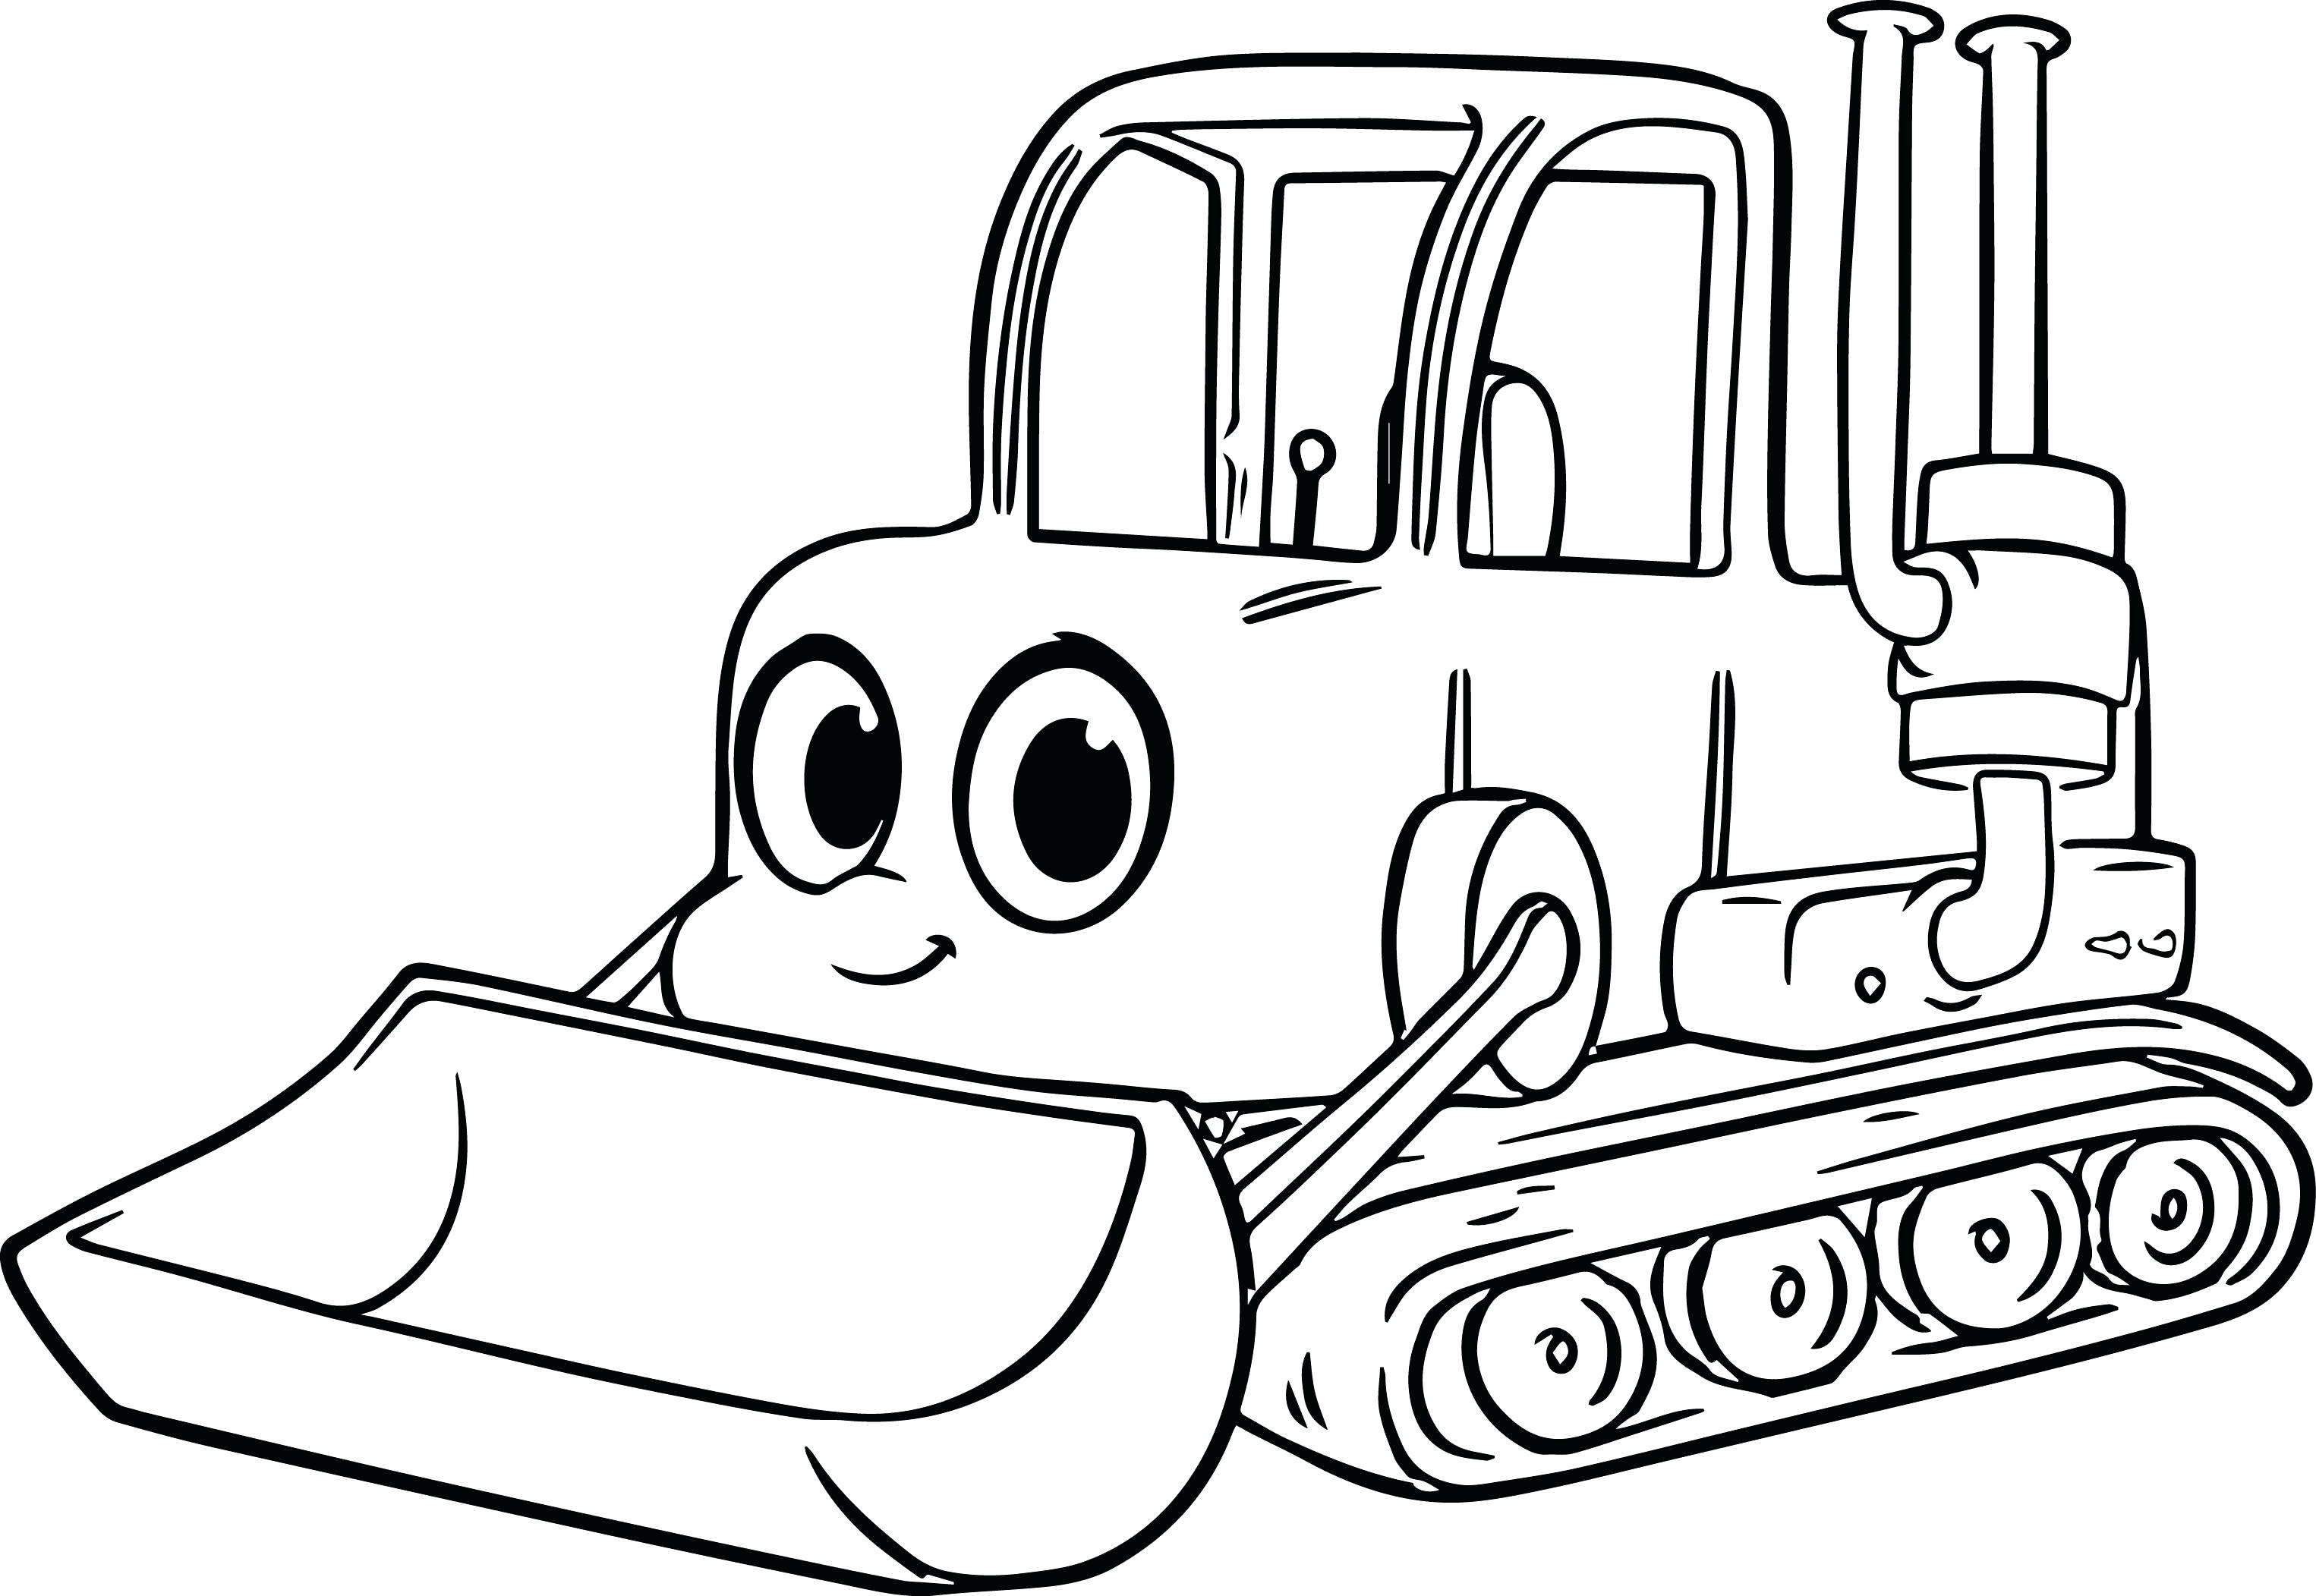 Construction Equipment Drawings